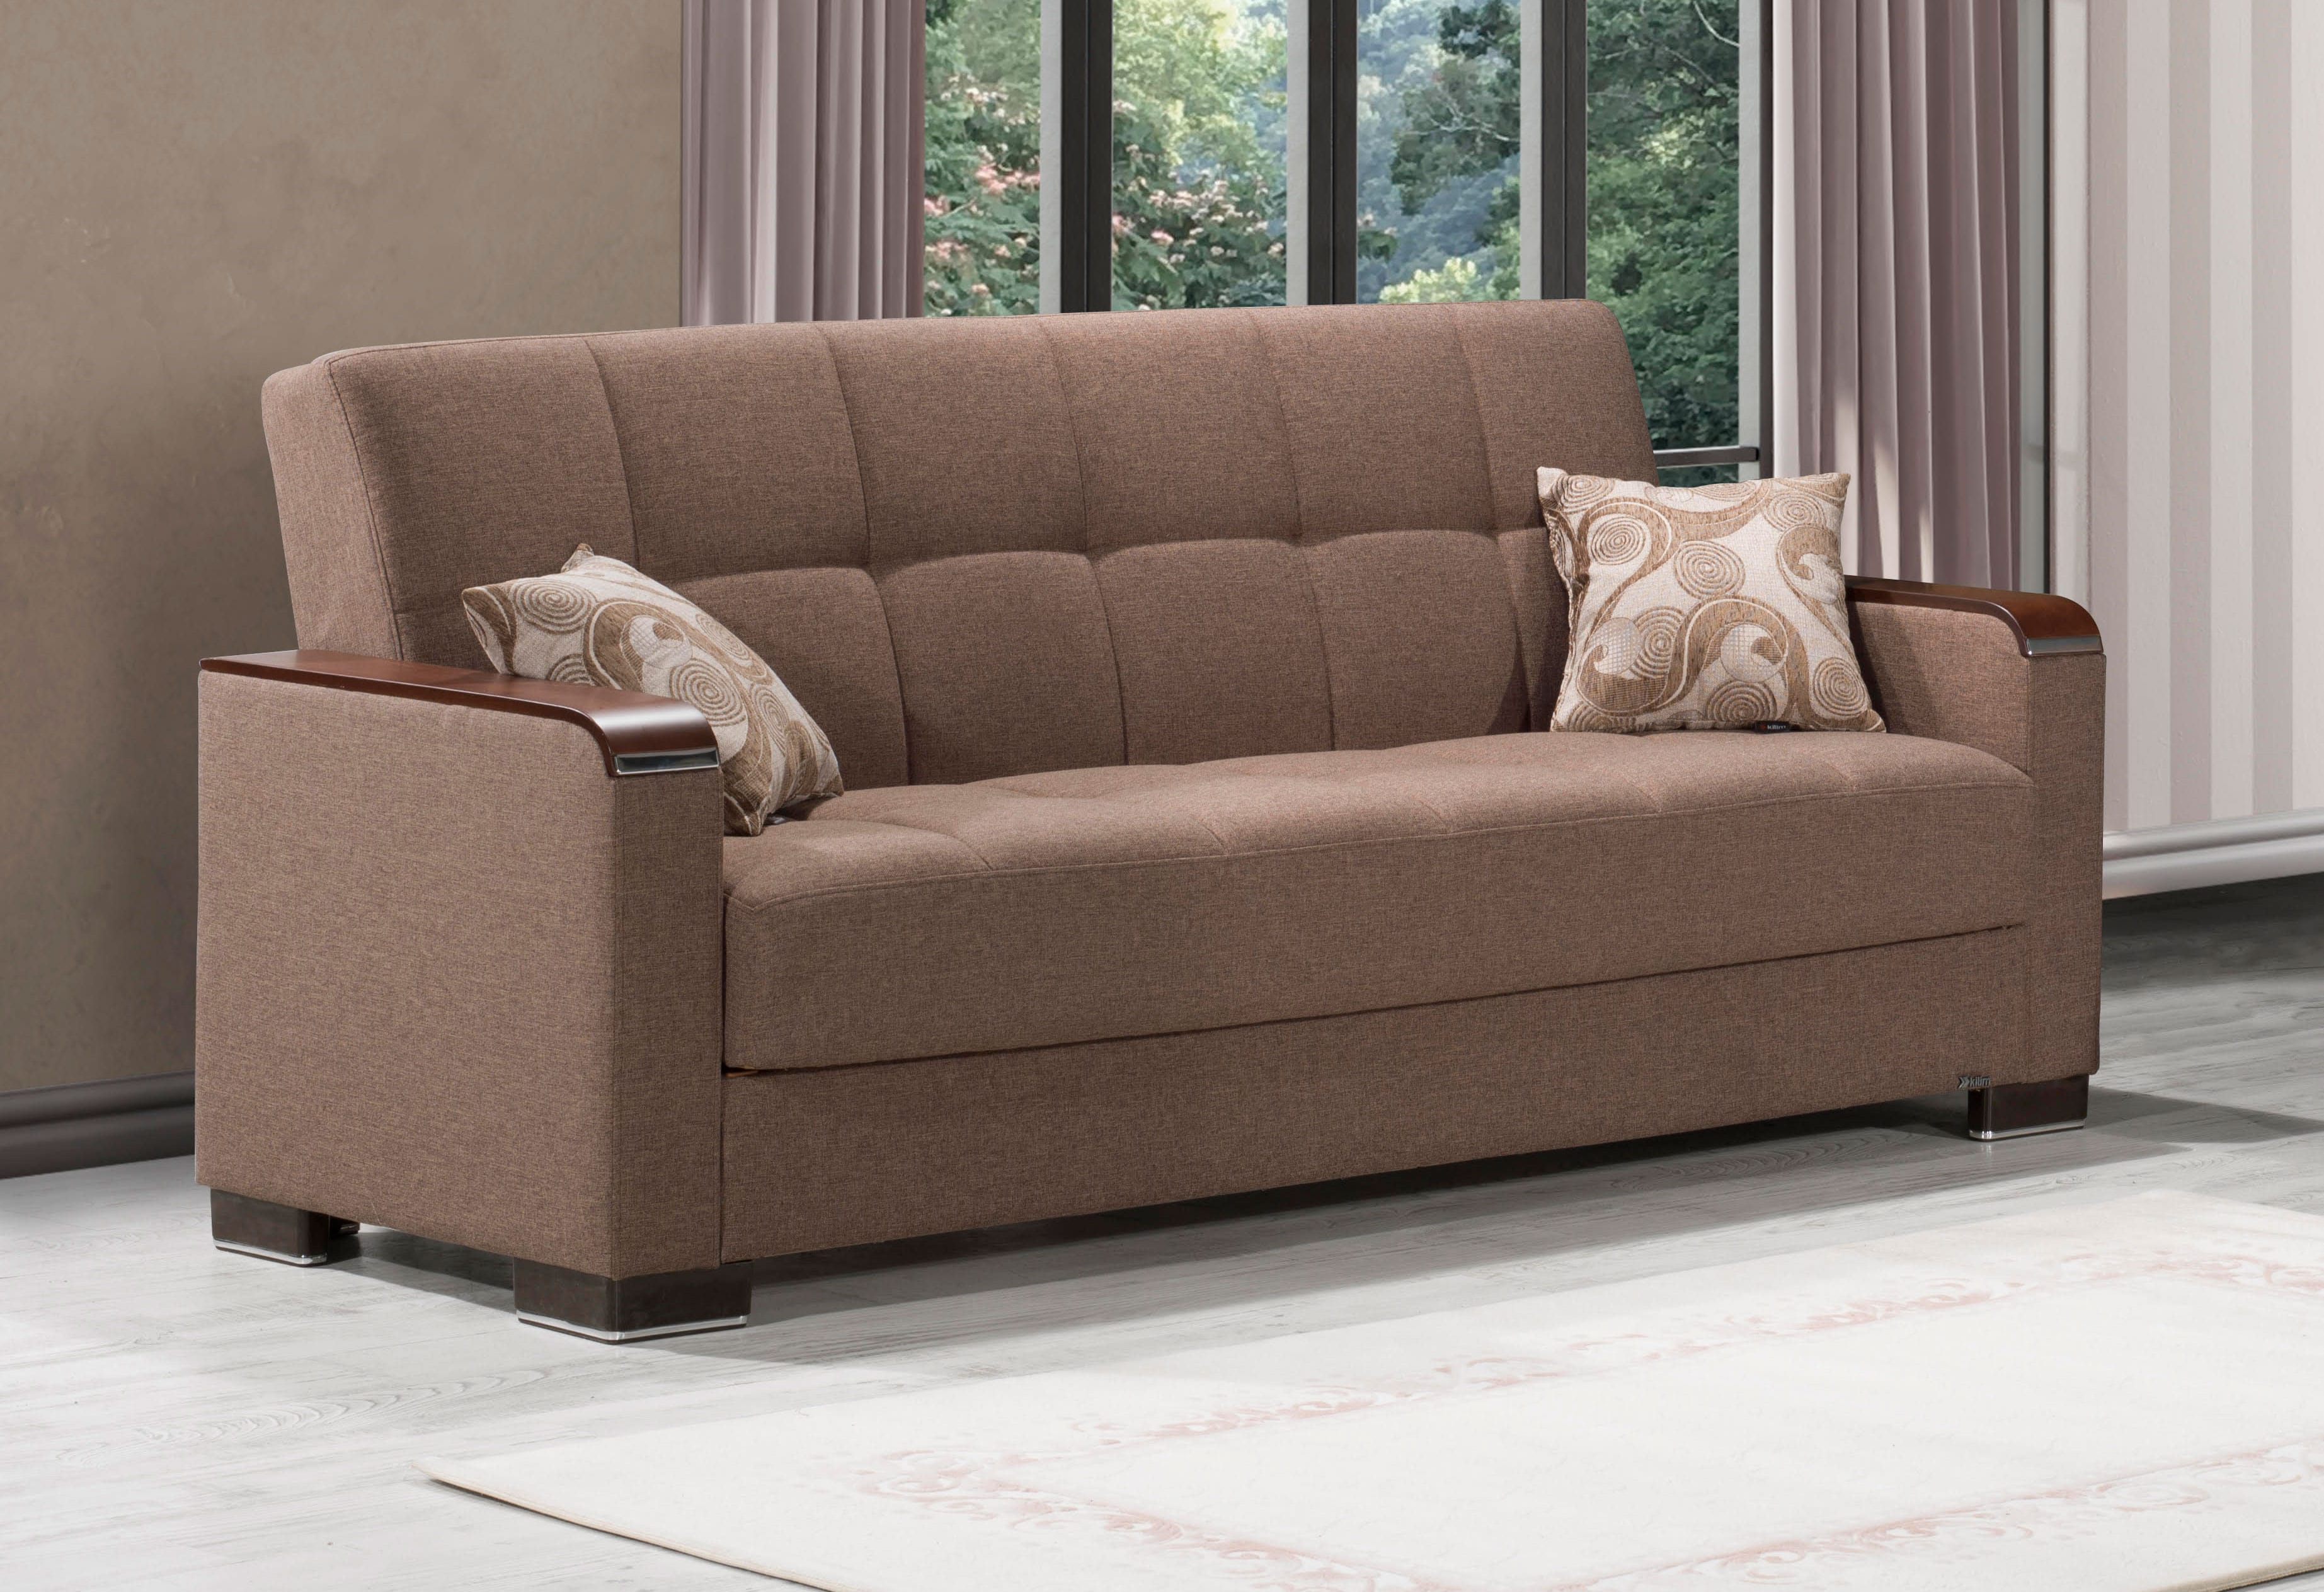 Armada X Light Brown Sofa Bed By Casamode